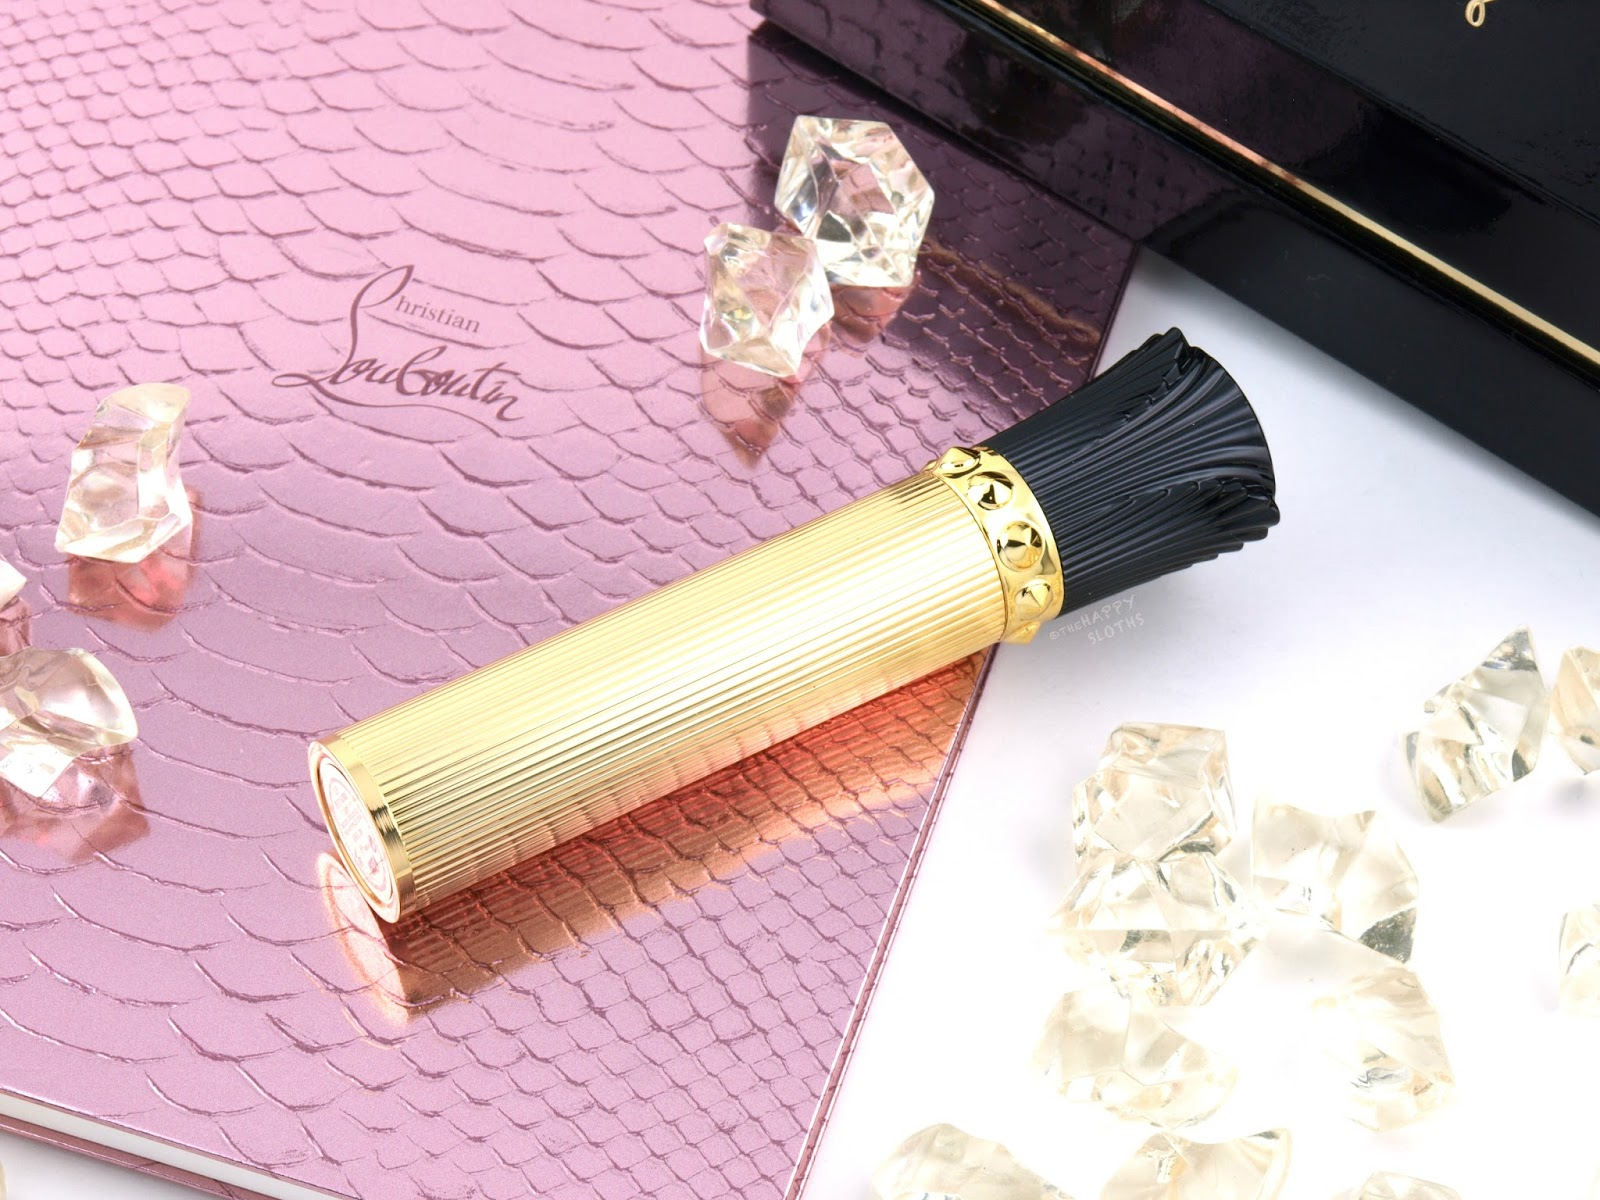 Christian Louboutin Les Yeux Noirs Lash Amplifying Lacquer Mascara: Review and Swatches